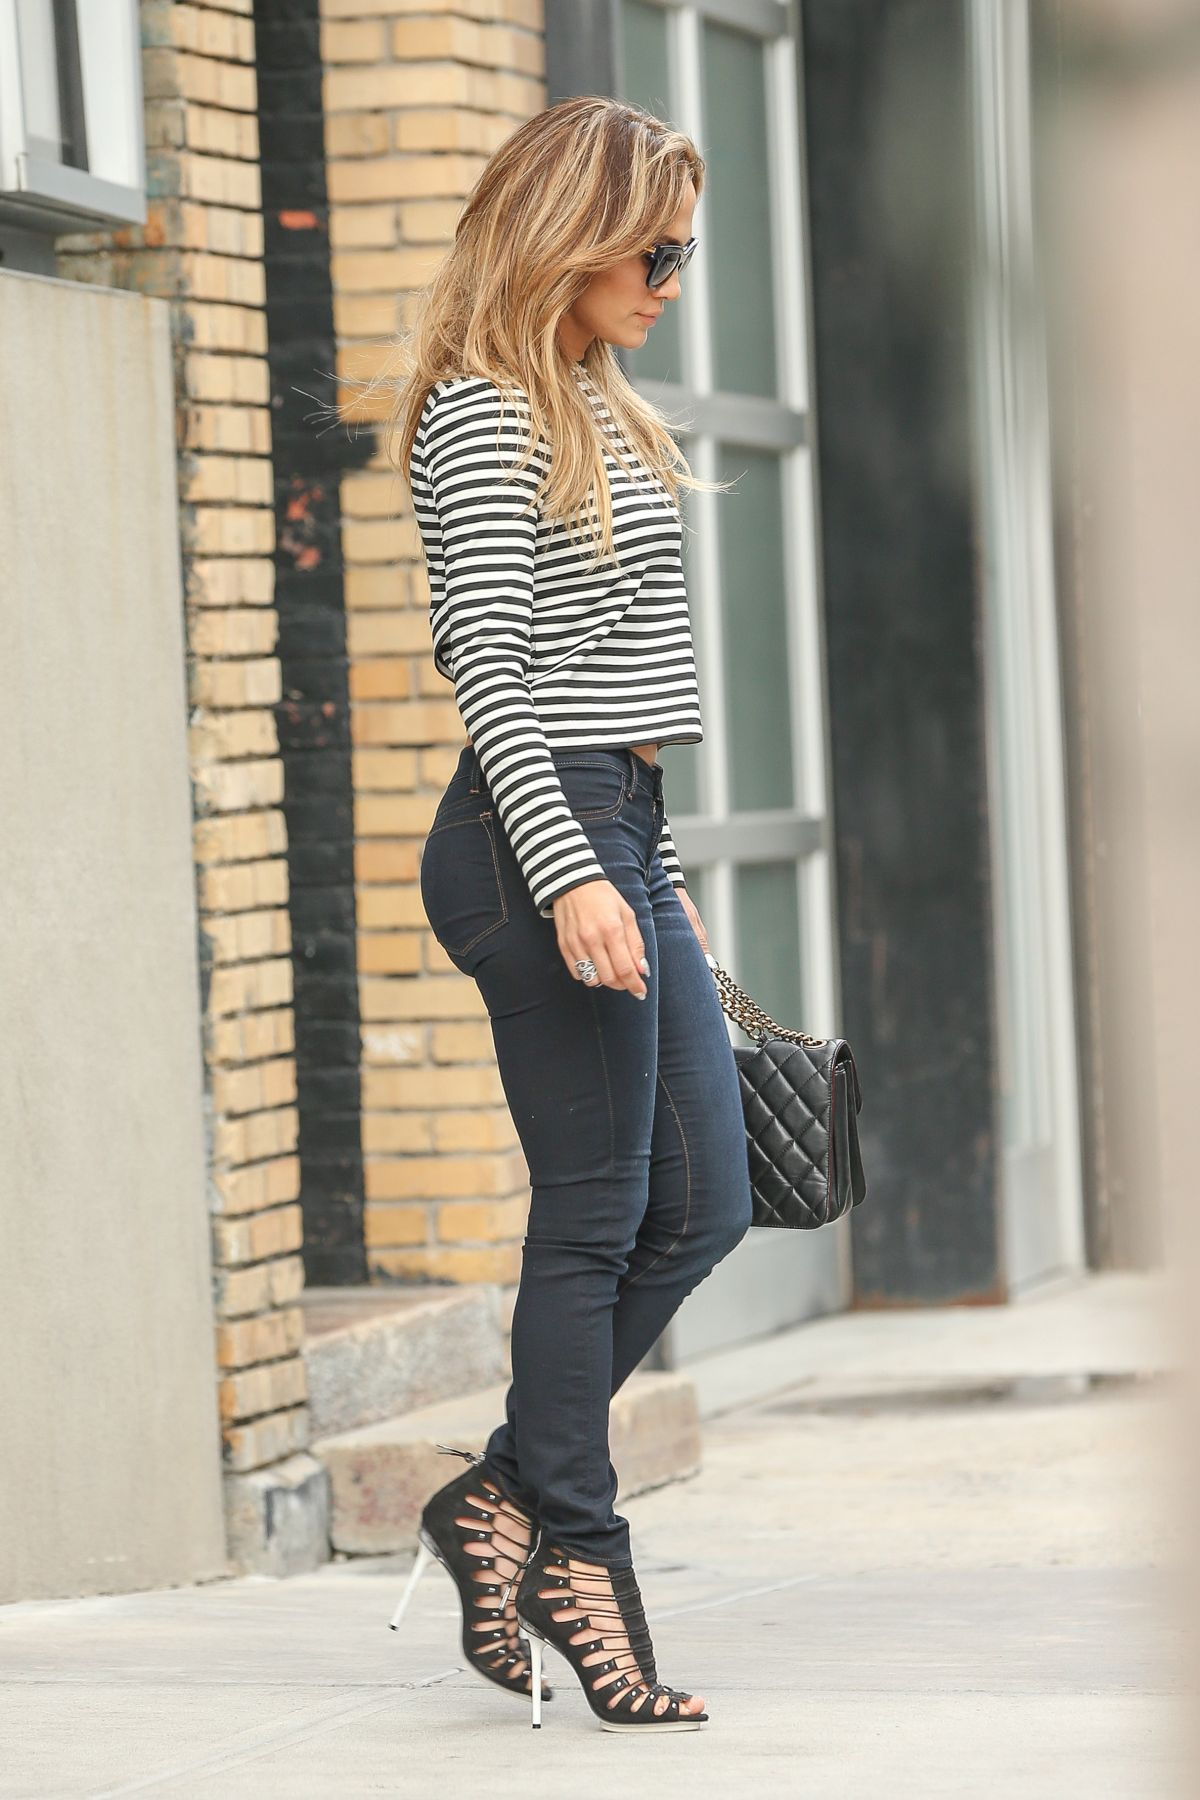 JENNIFER LOPEZ in Tight Jeans Out and About in New York